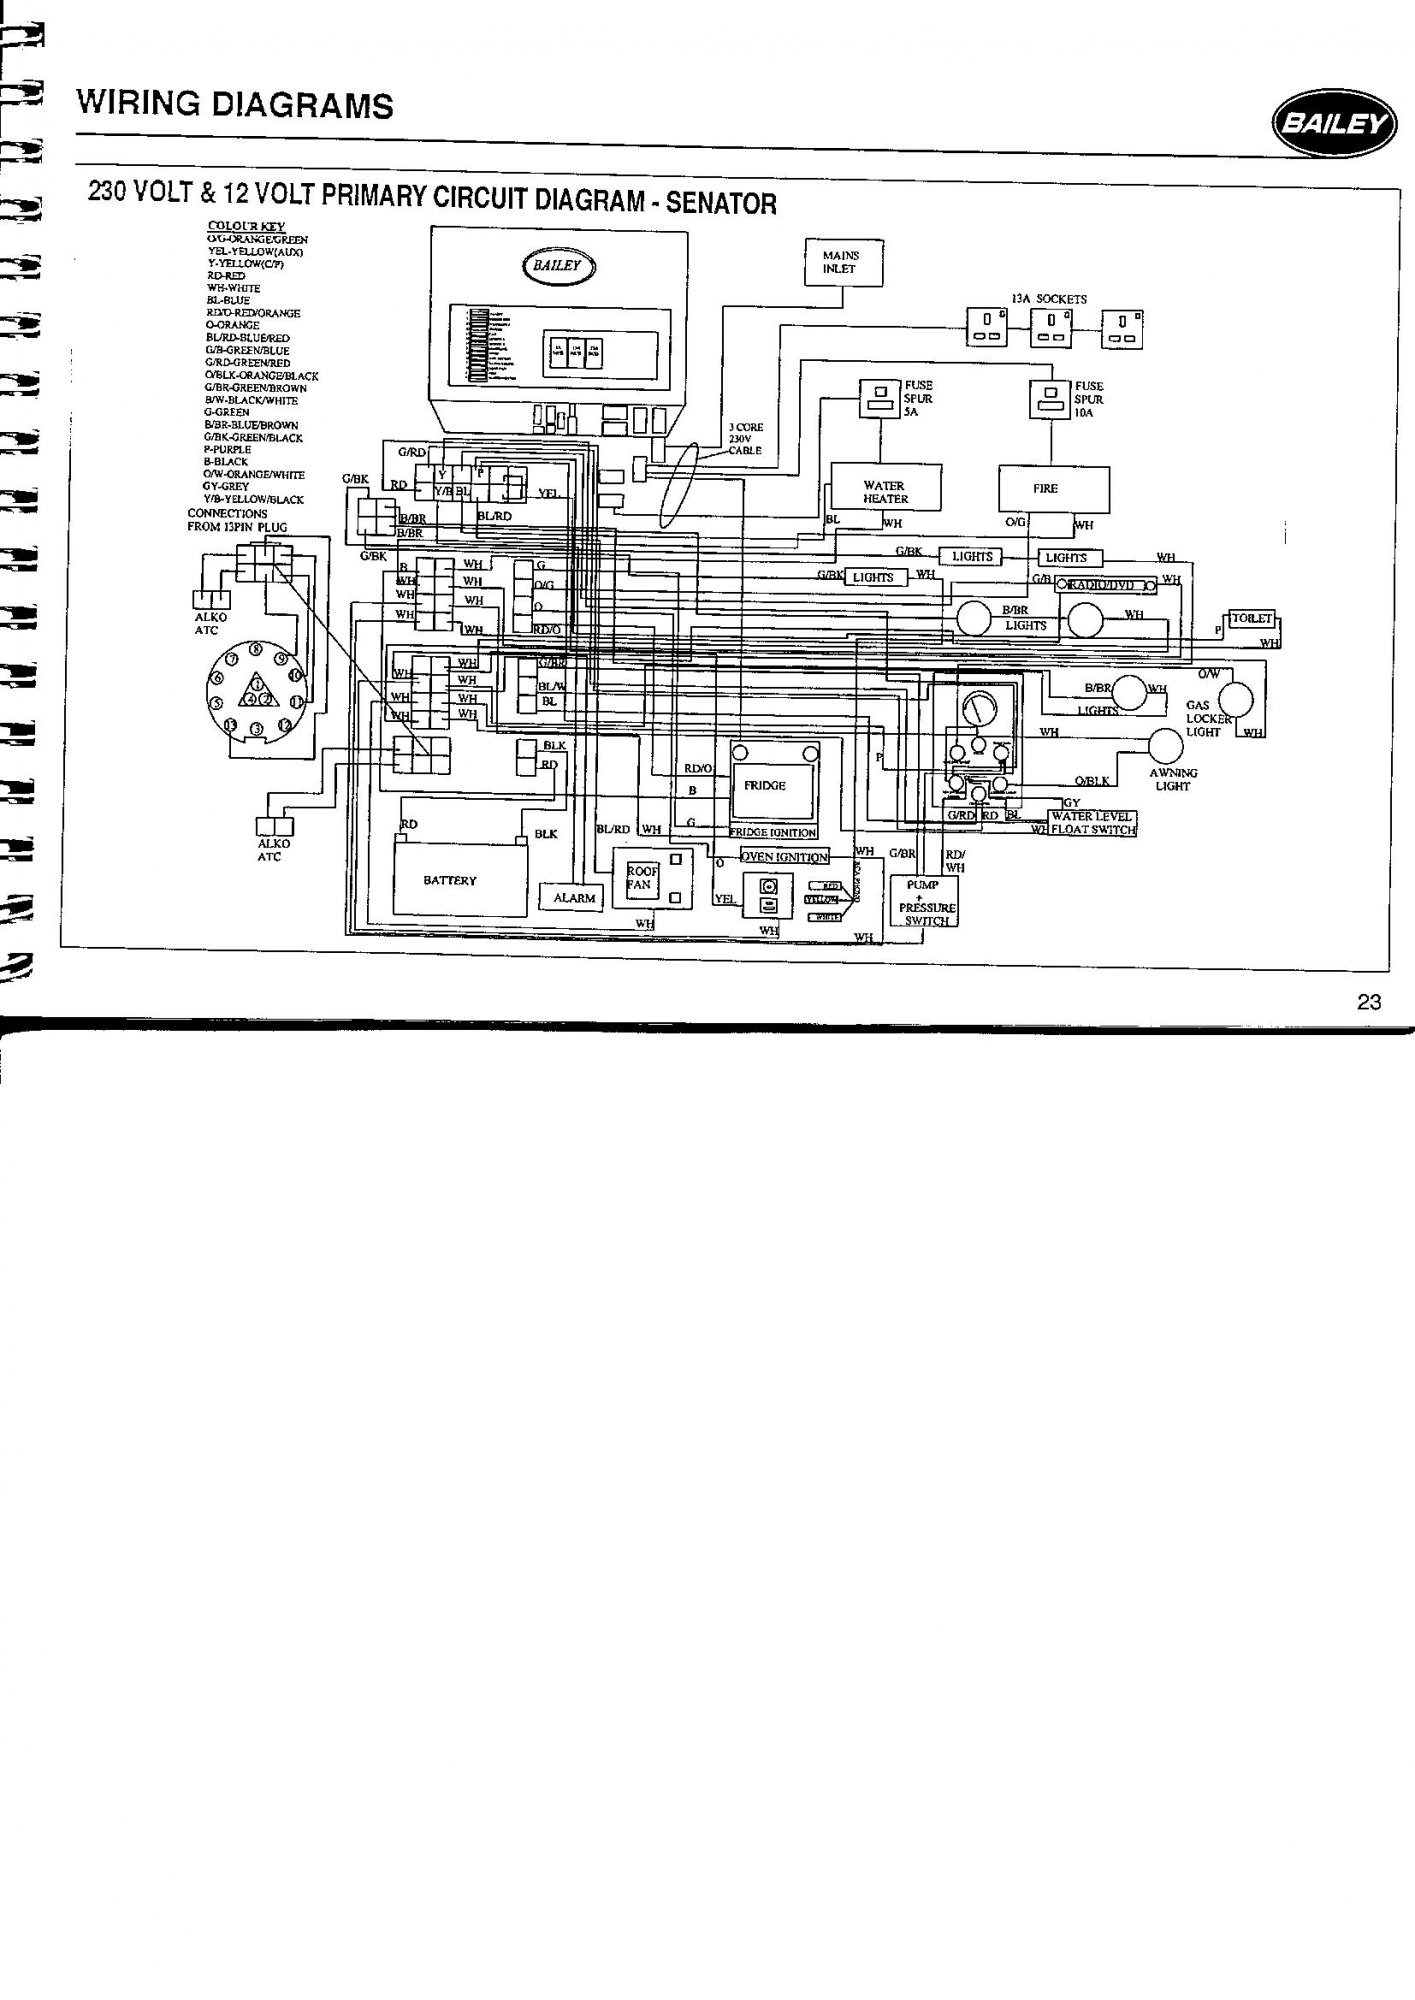 bailey caravan wiring diagram